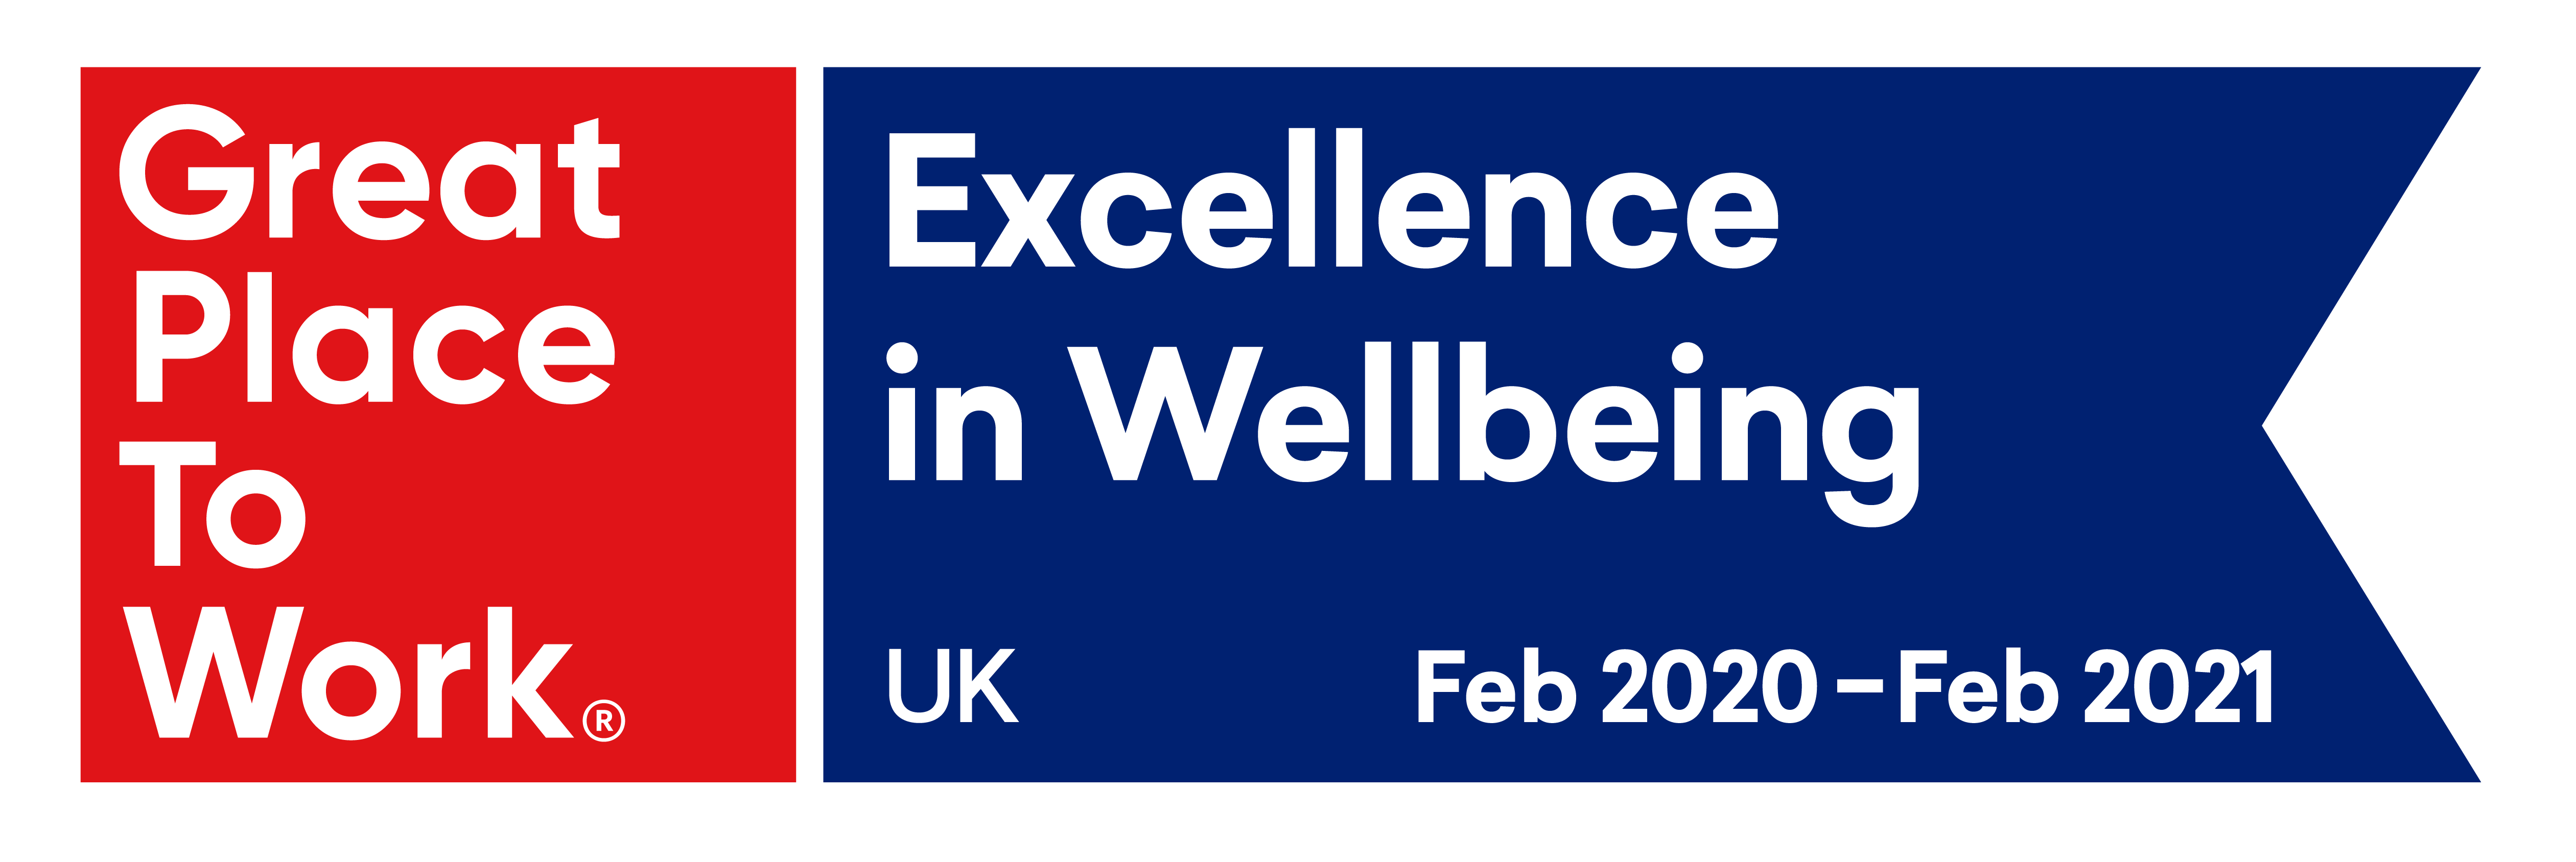 8.Great Place to Work Excellence in Wellbeing Award